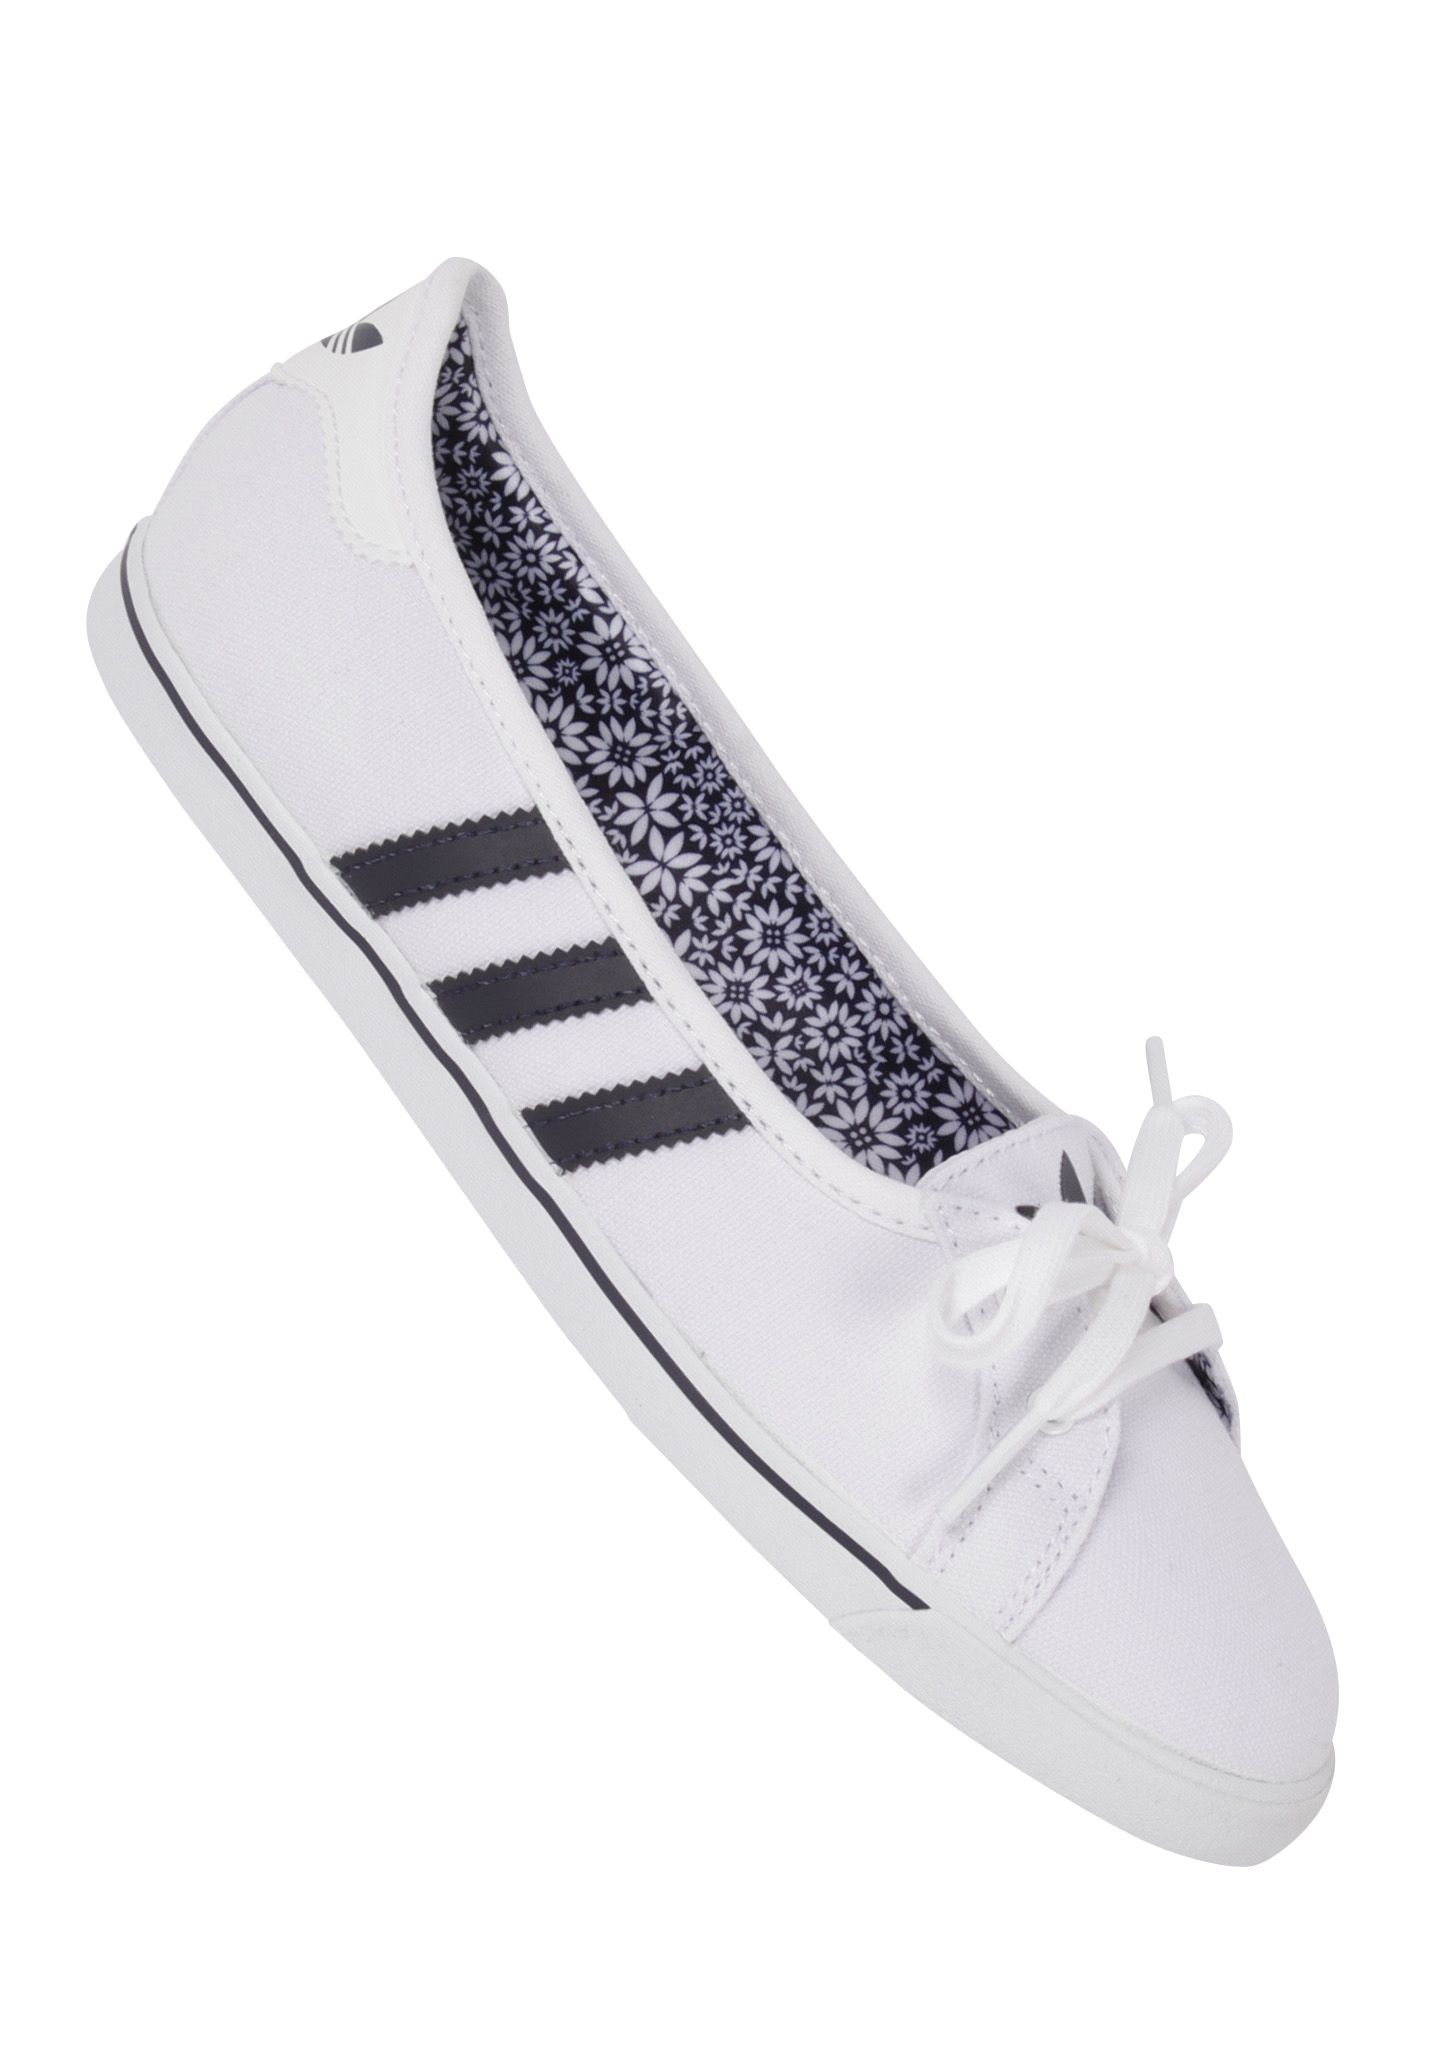 Star Shoes Adidas Women Ballerina White Court For Slim 5IqrRy7wq